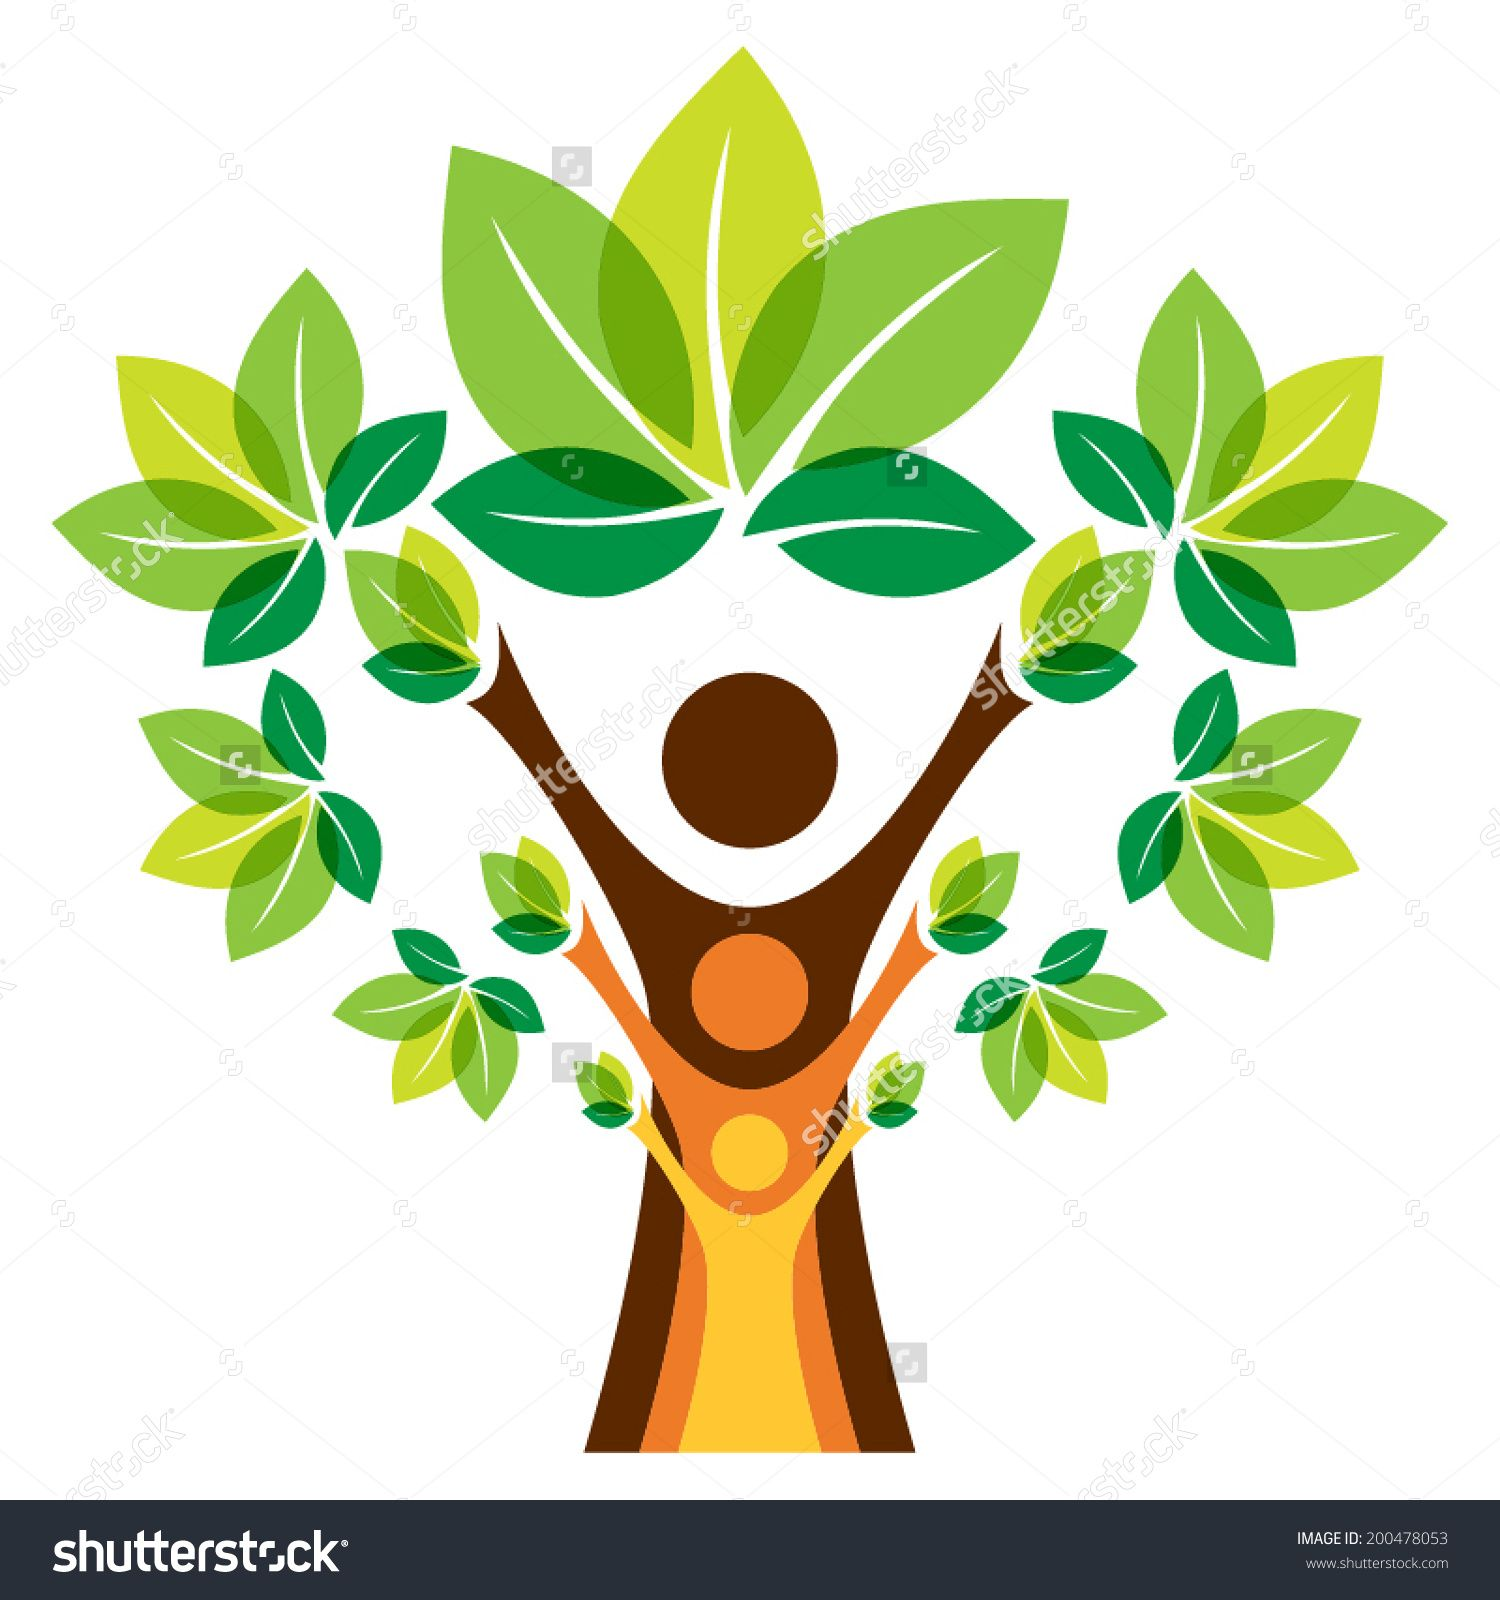 stock-vector-growing-family-tree-concept-200478053.jpg (1500×1600 ...